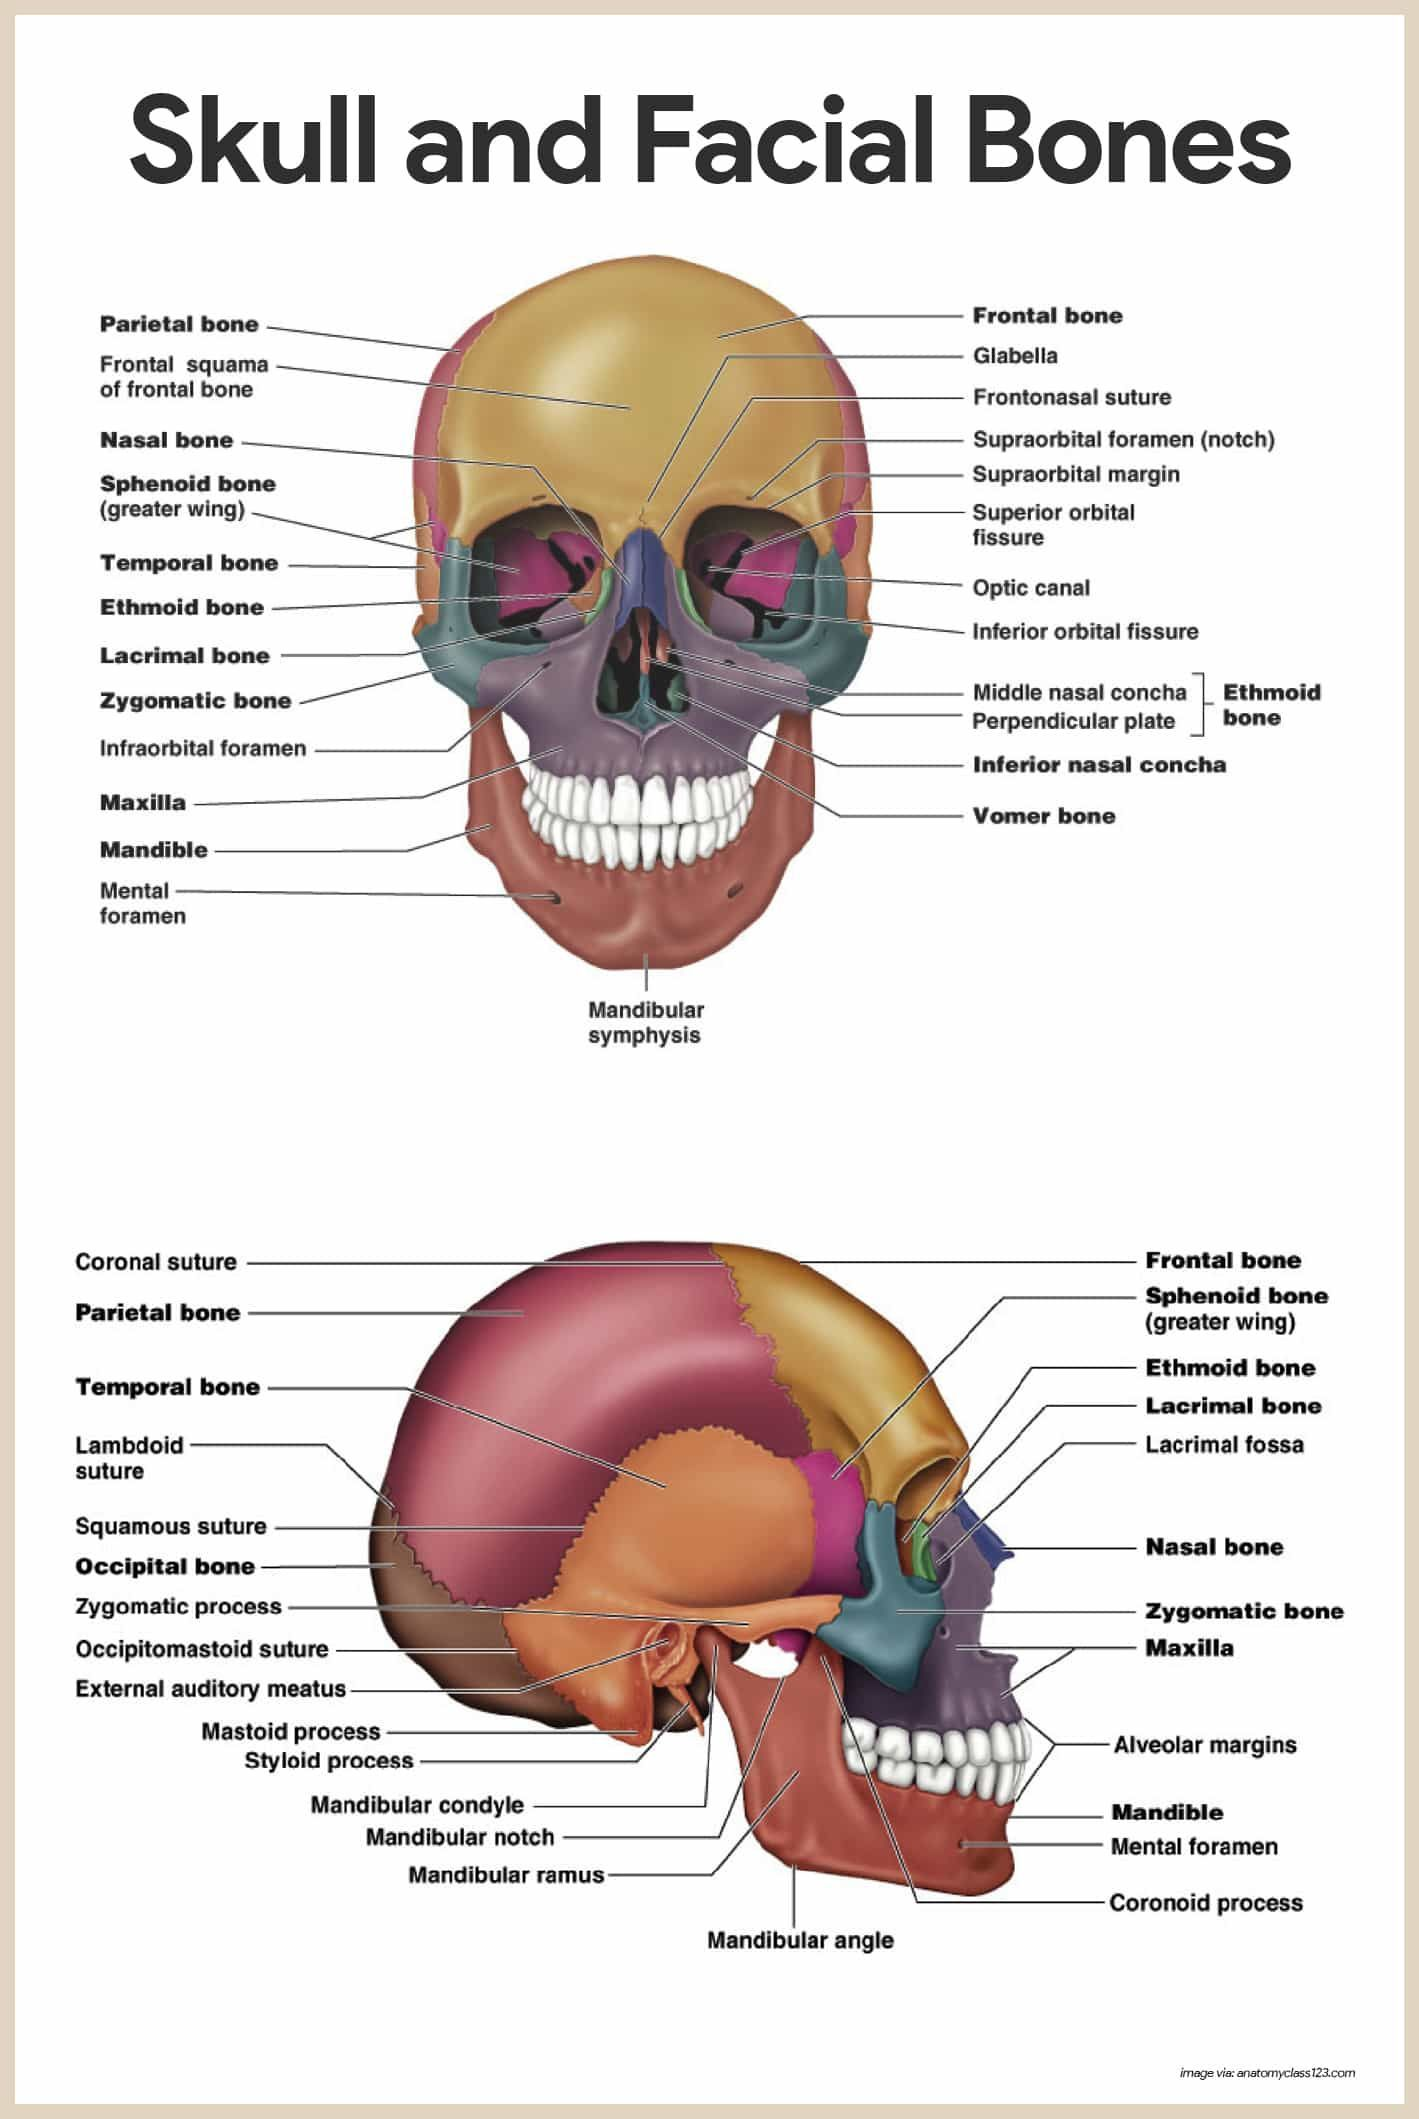 Skeletal System Anatomy and Physiology | Pinterest